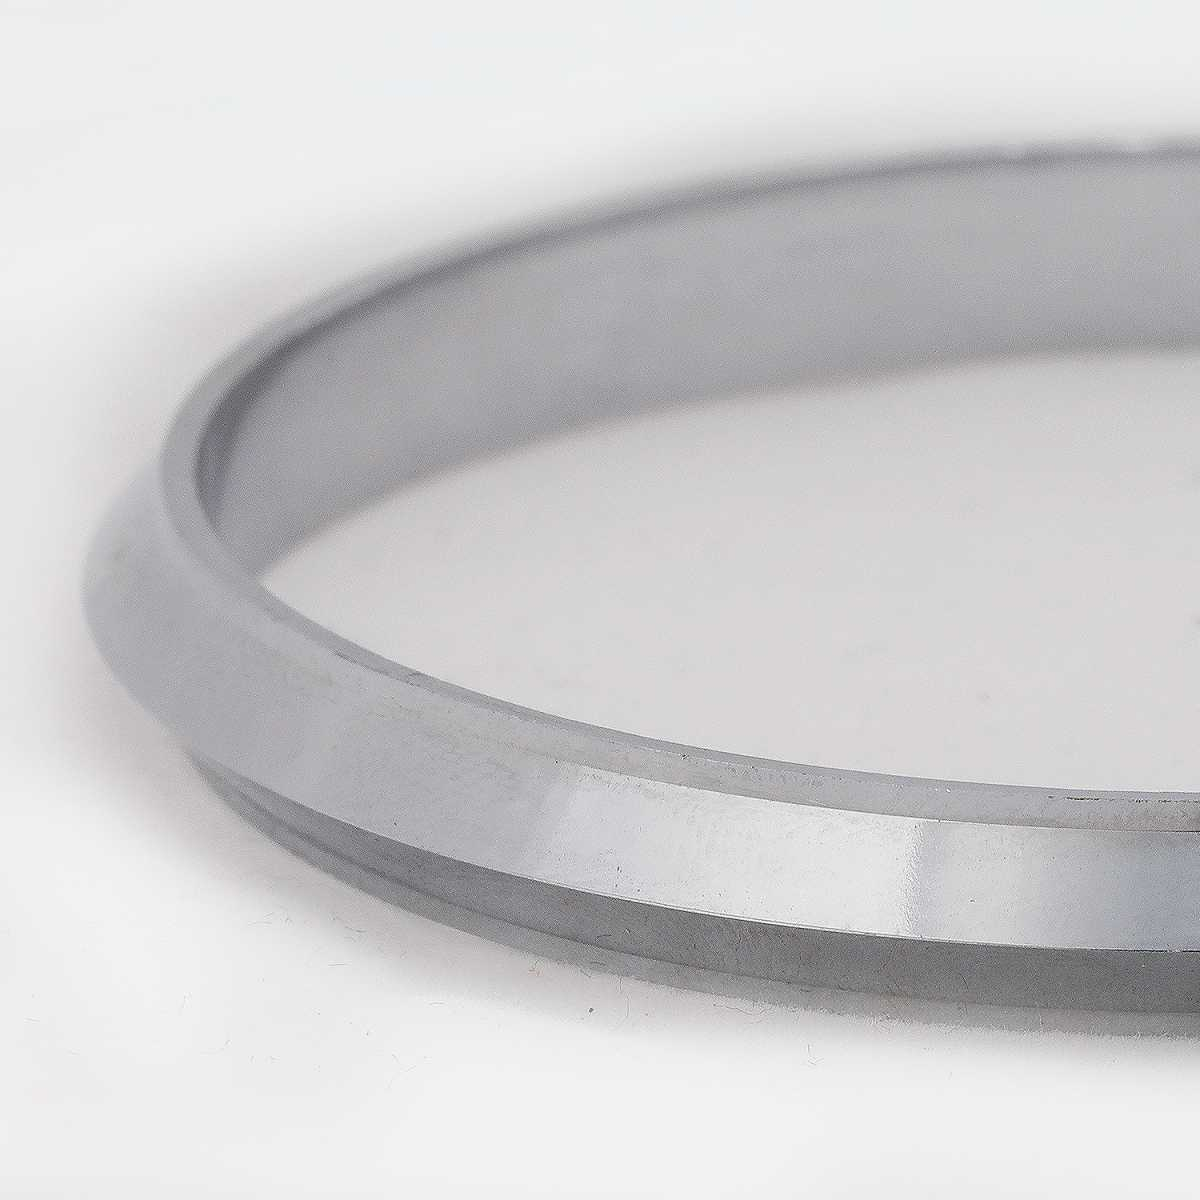 Silver Shine Silver Plated  Thick Textured Glossy Finish  Punjabi Kada Bangle Bracelet For Boys and Mens.